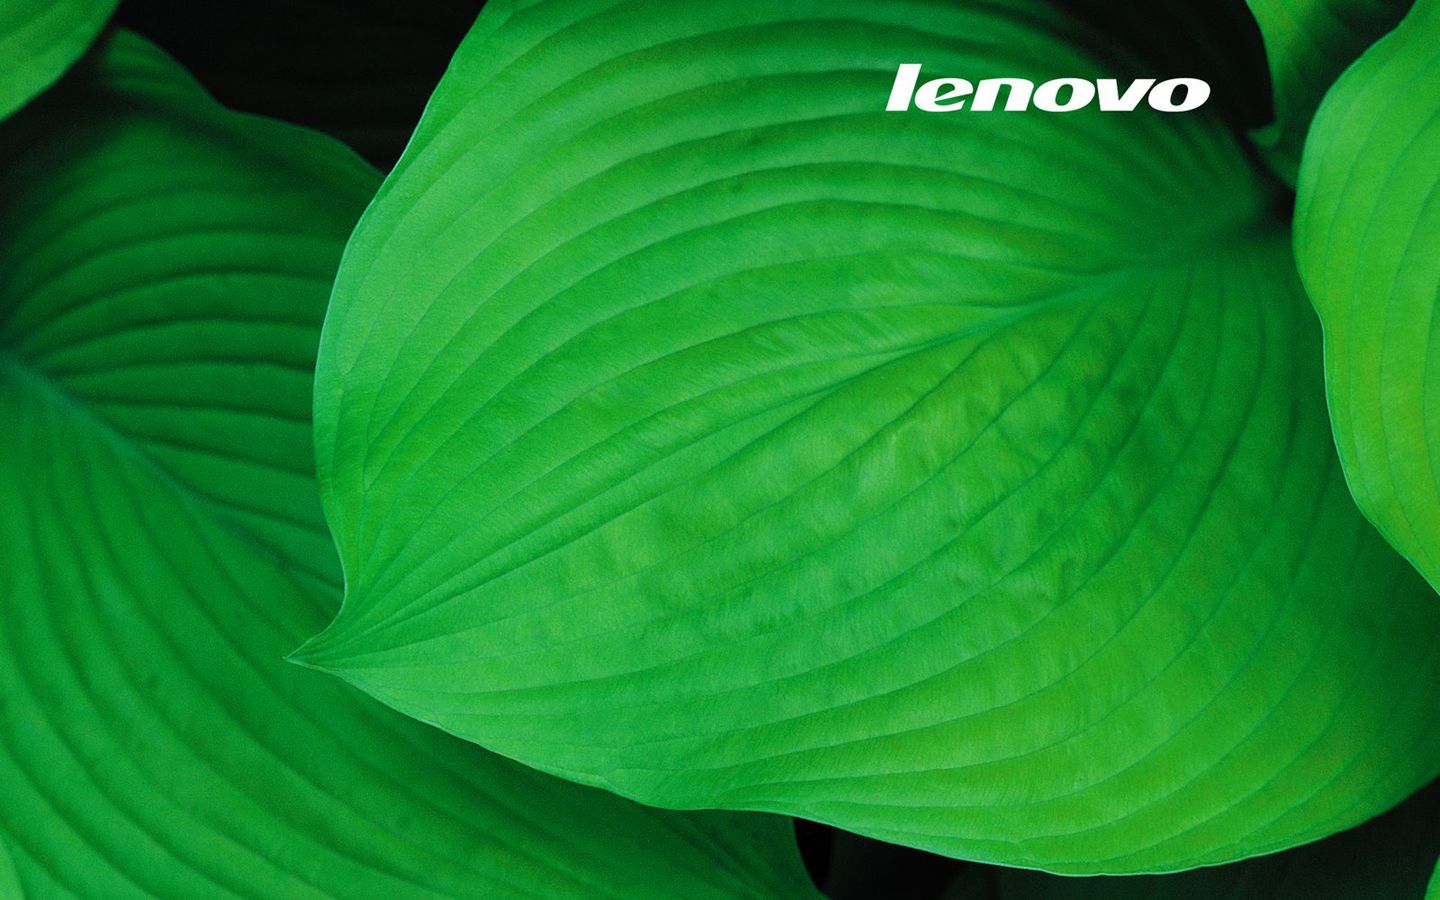 Lenovo Wallpaper